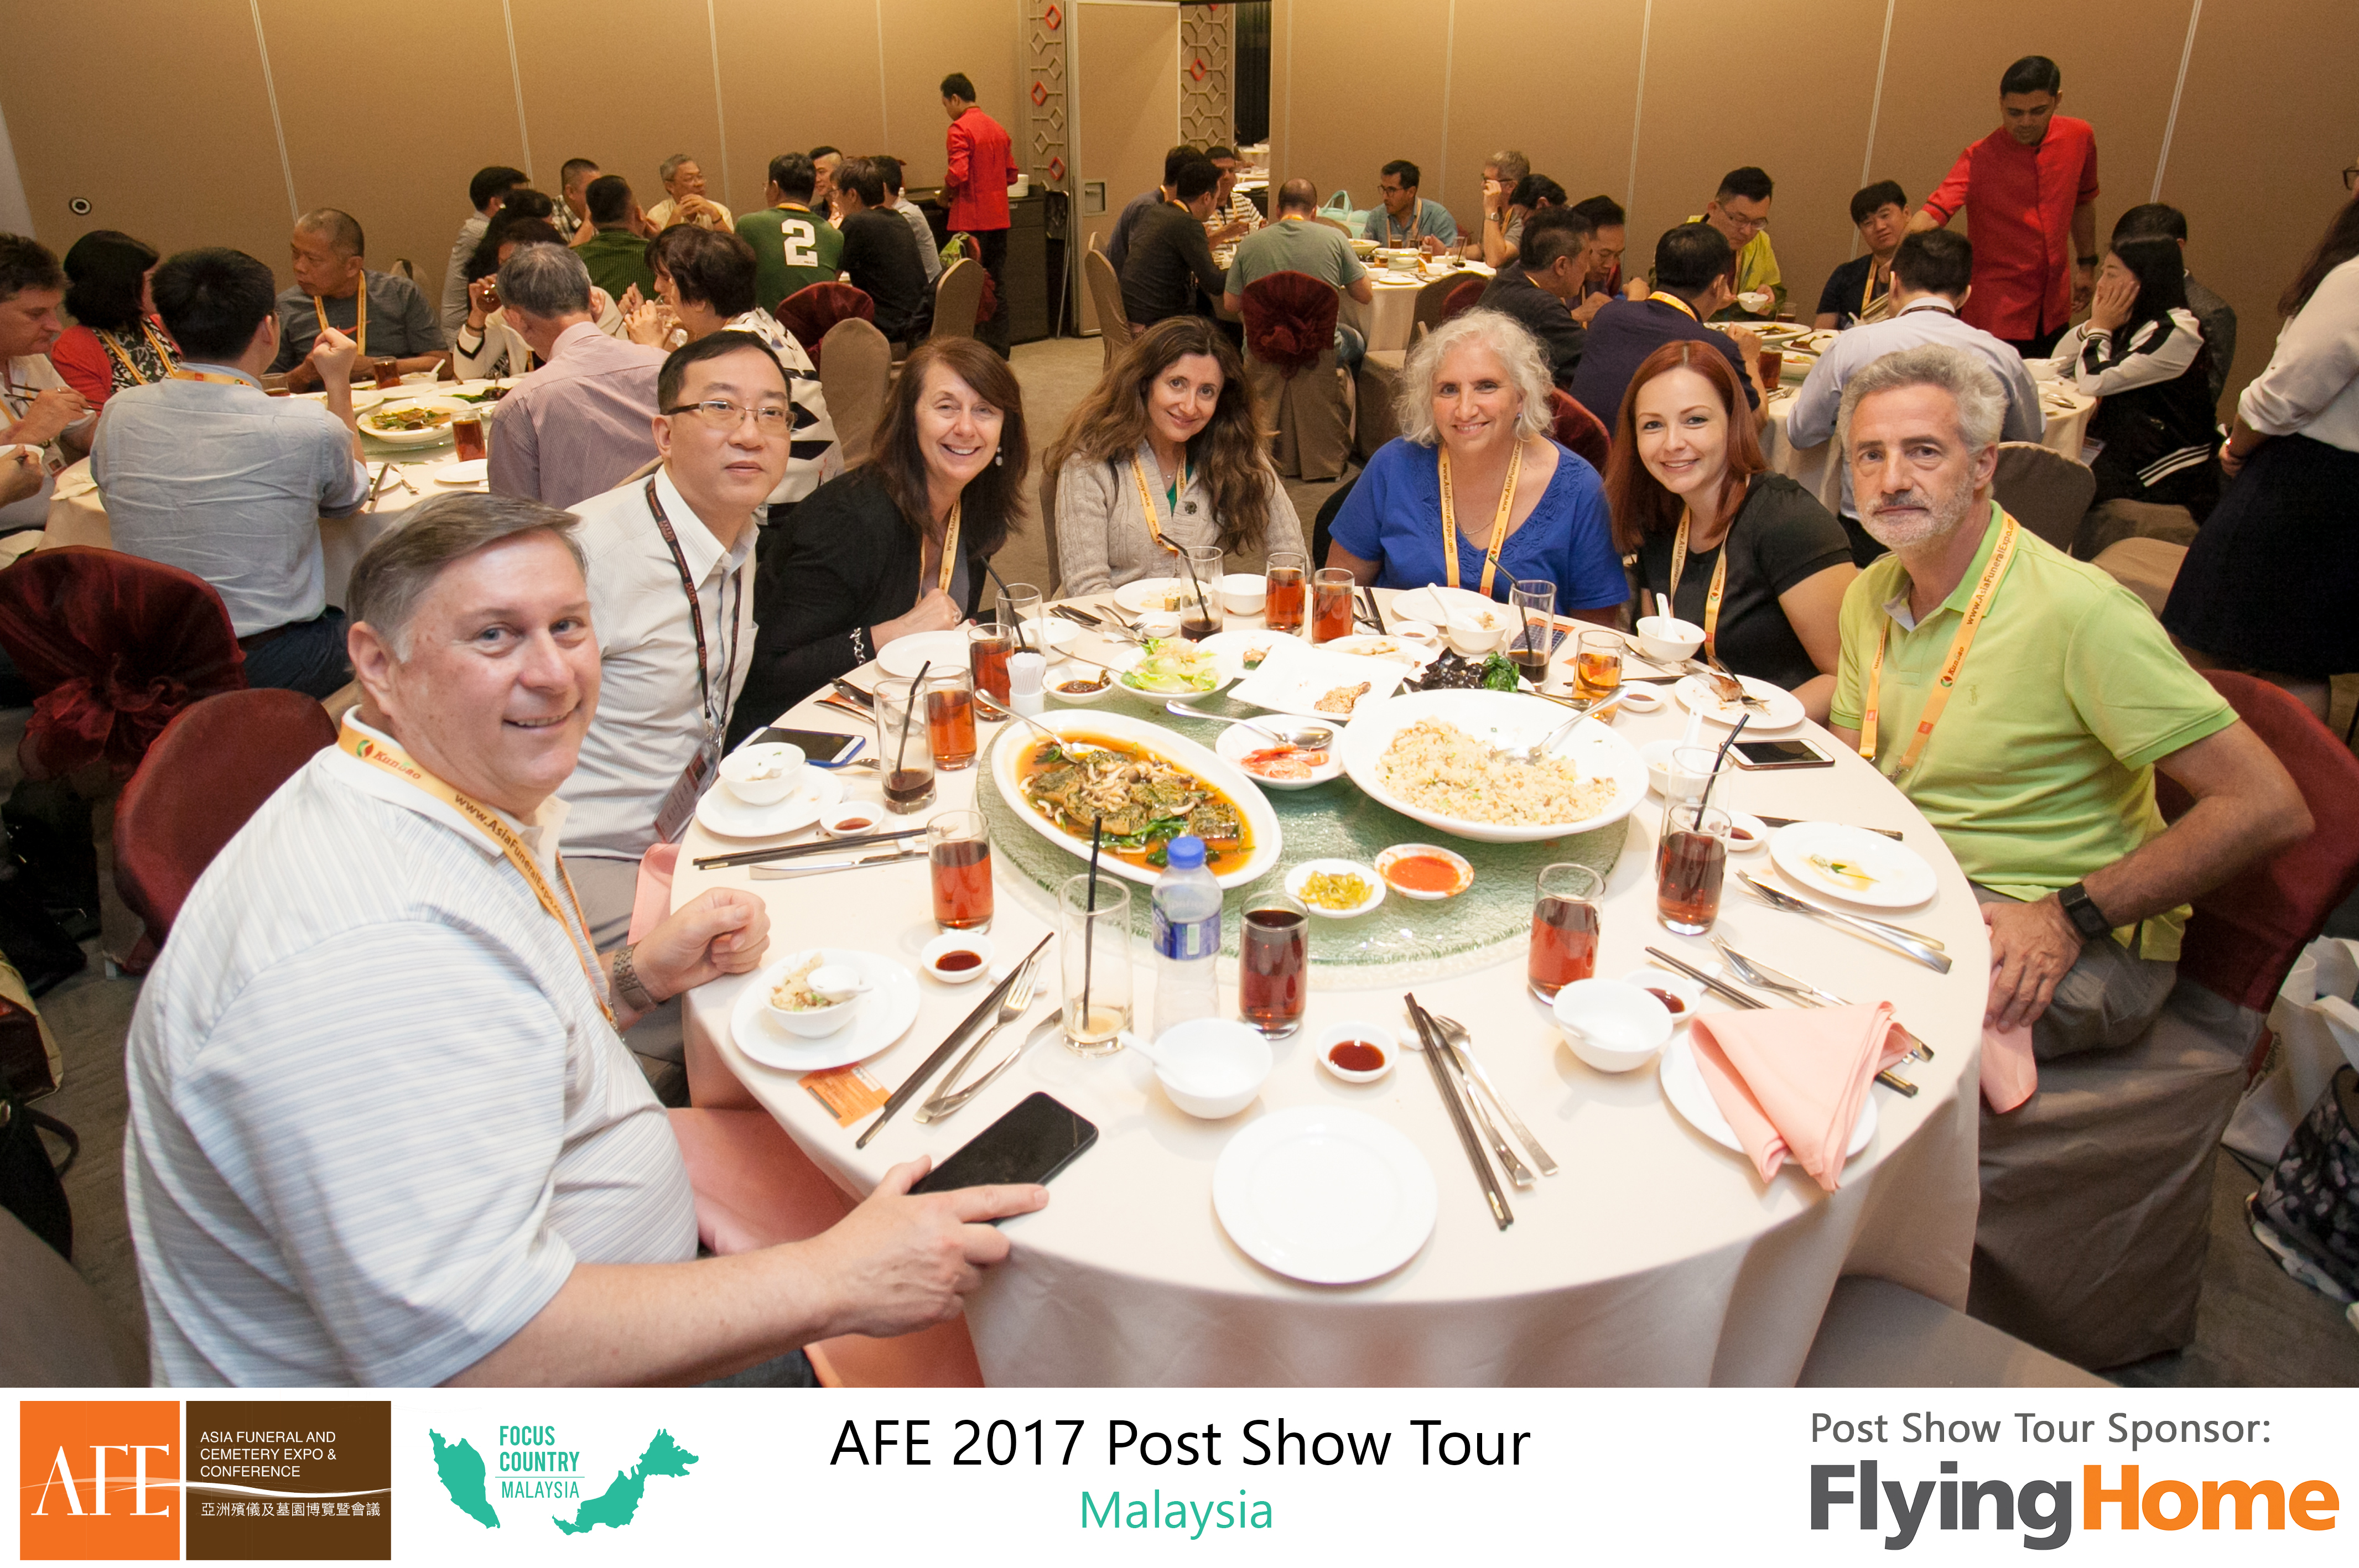 AFE Post Show Tour 2017 Day 1 - 23